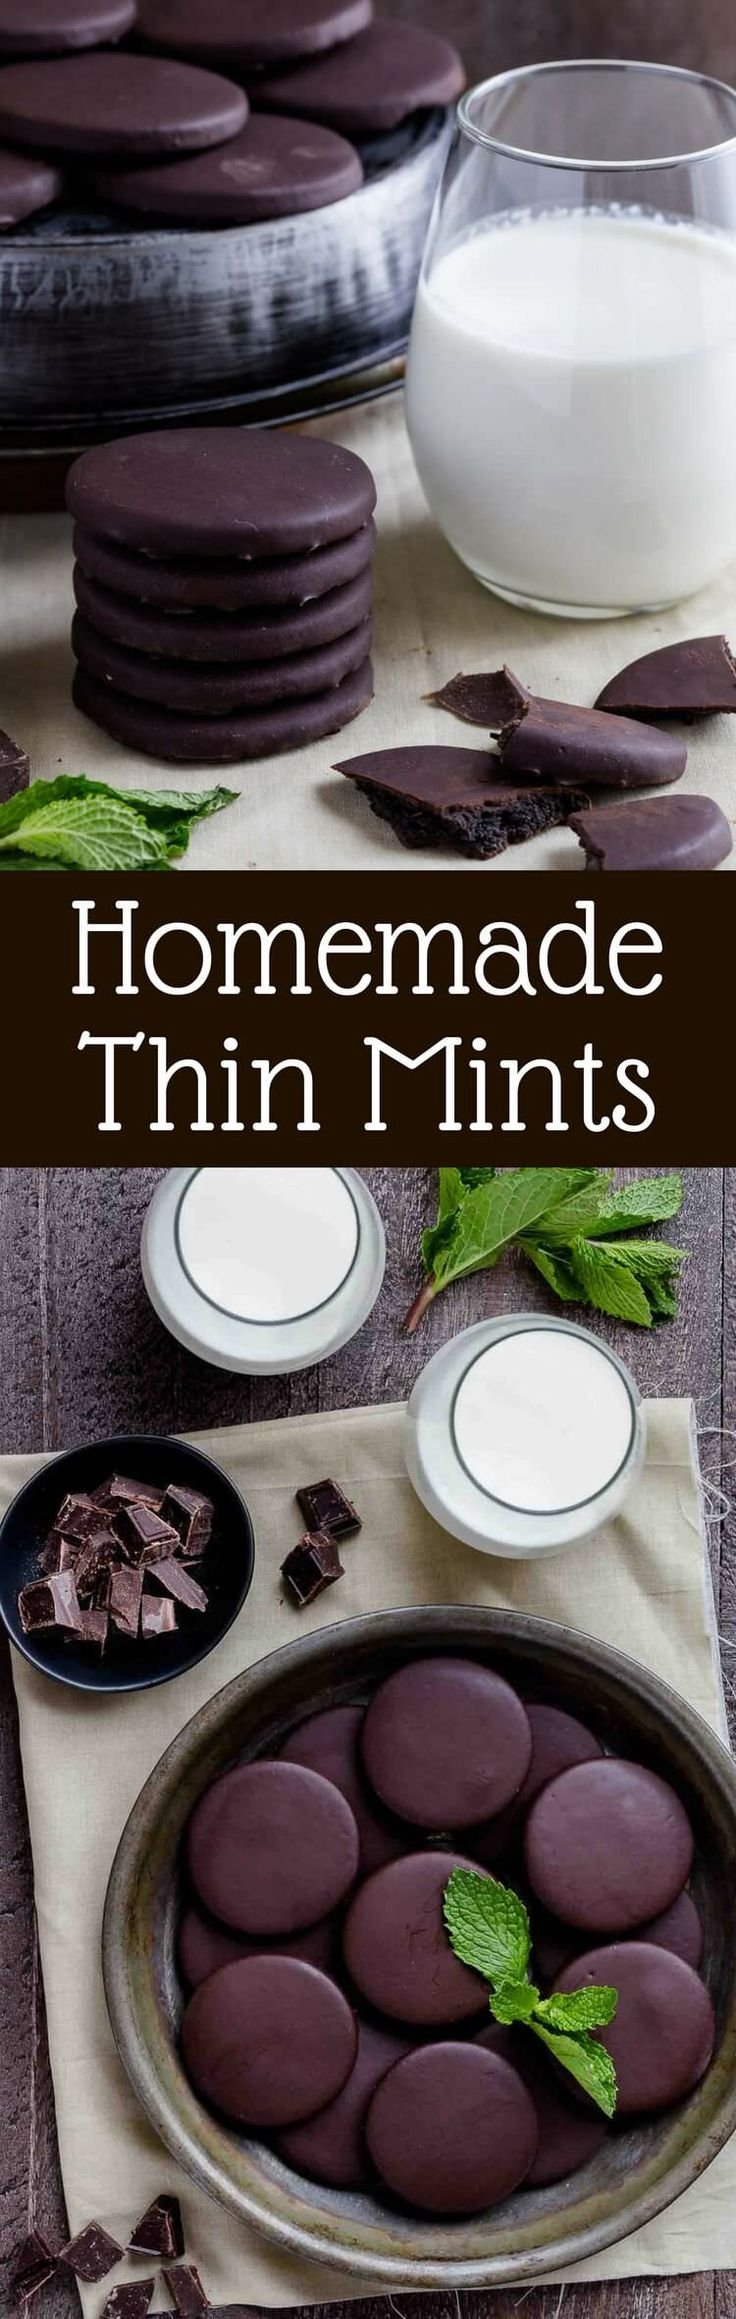 Homemade Thin Mints are just like the real thing! Crisp mint chocolate cookies coated in chocolate. They taste amazing! via @introvertbaker